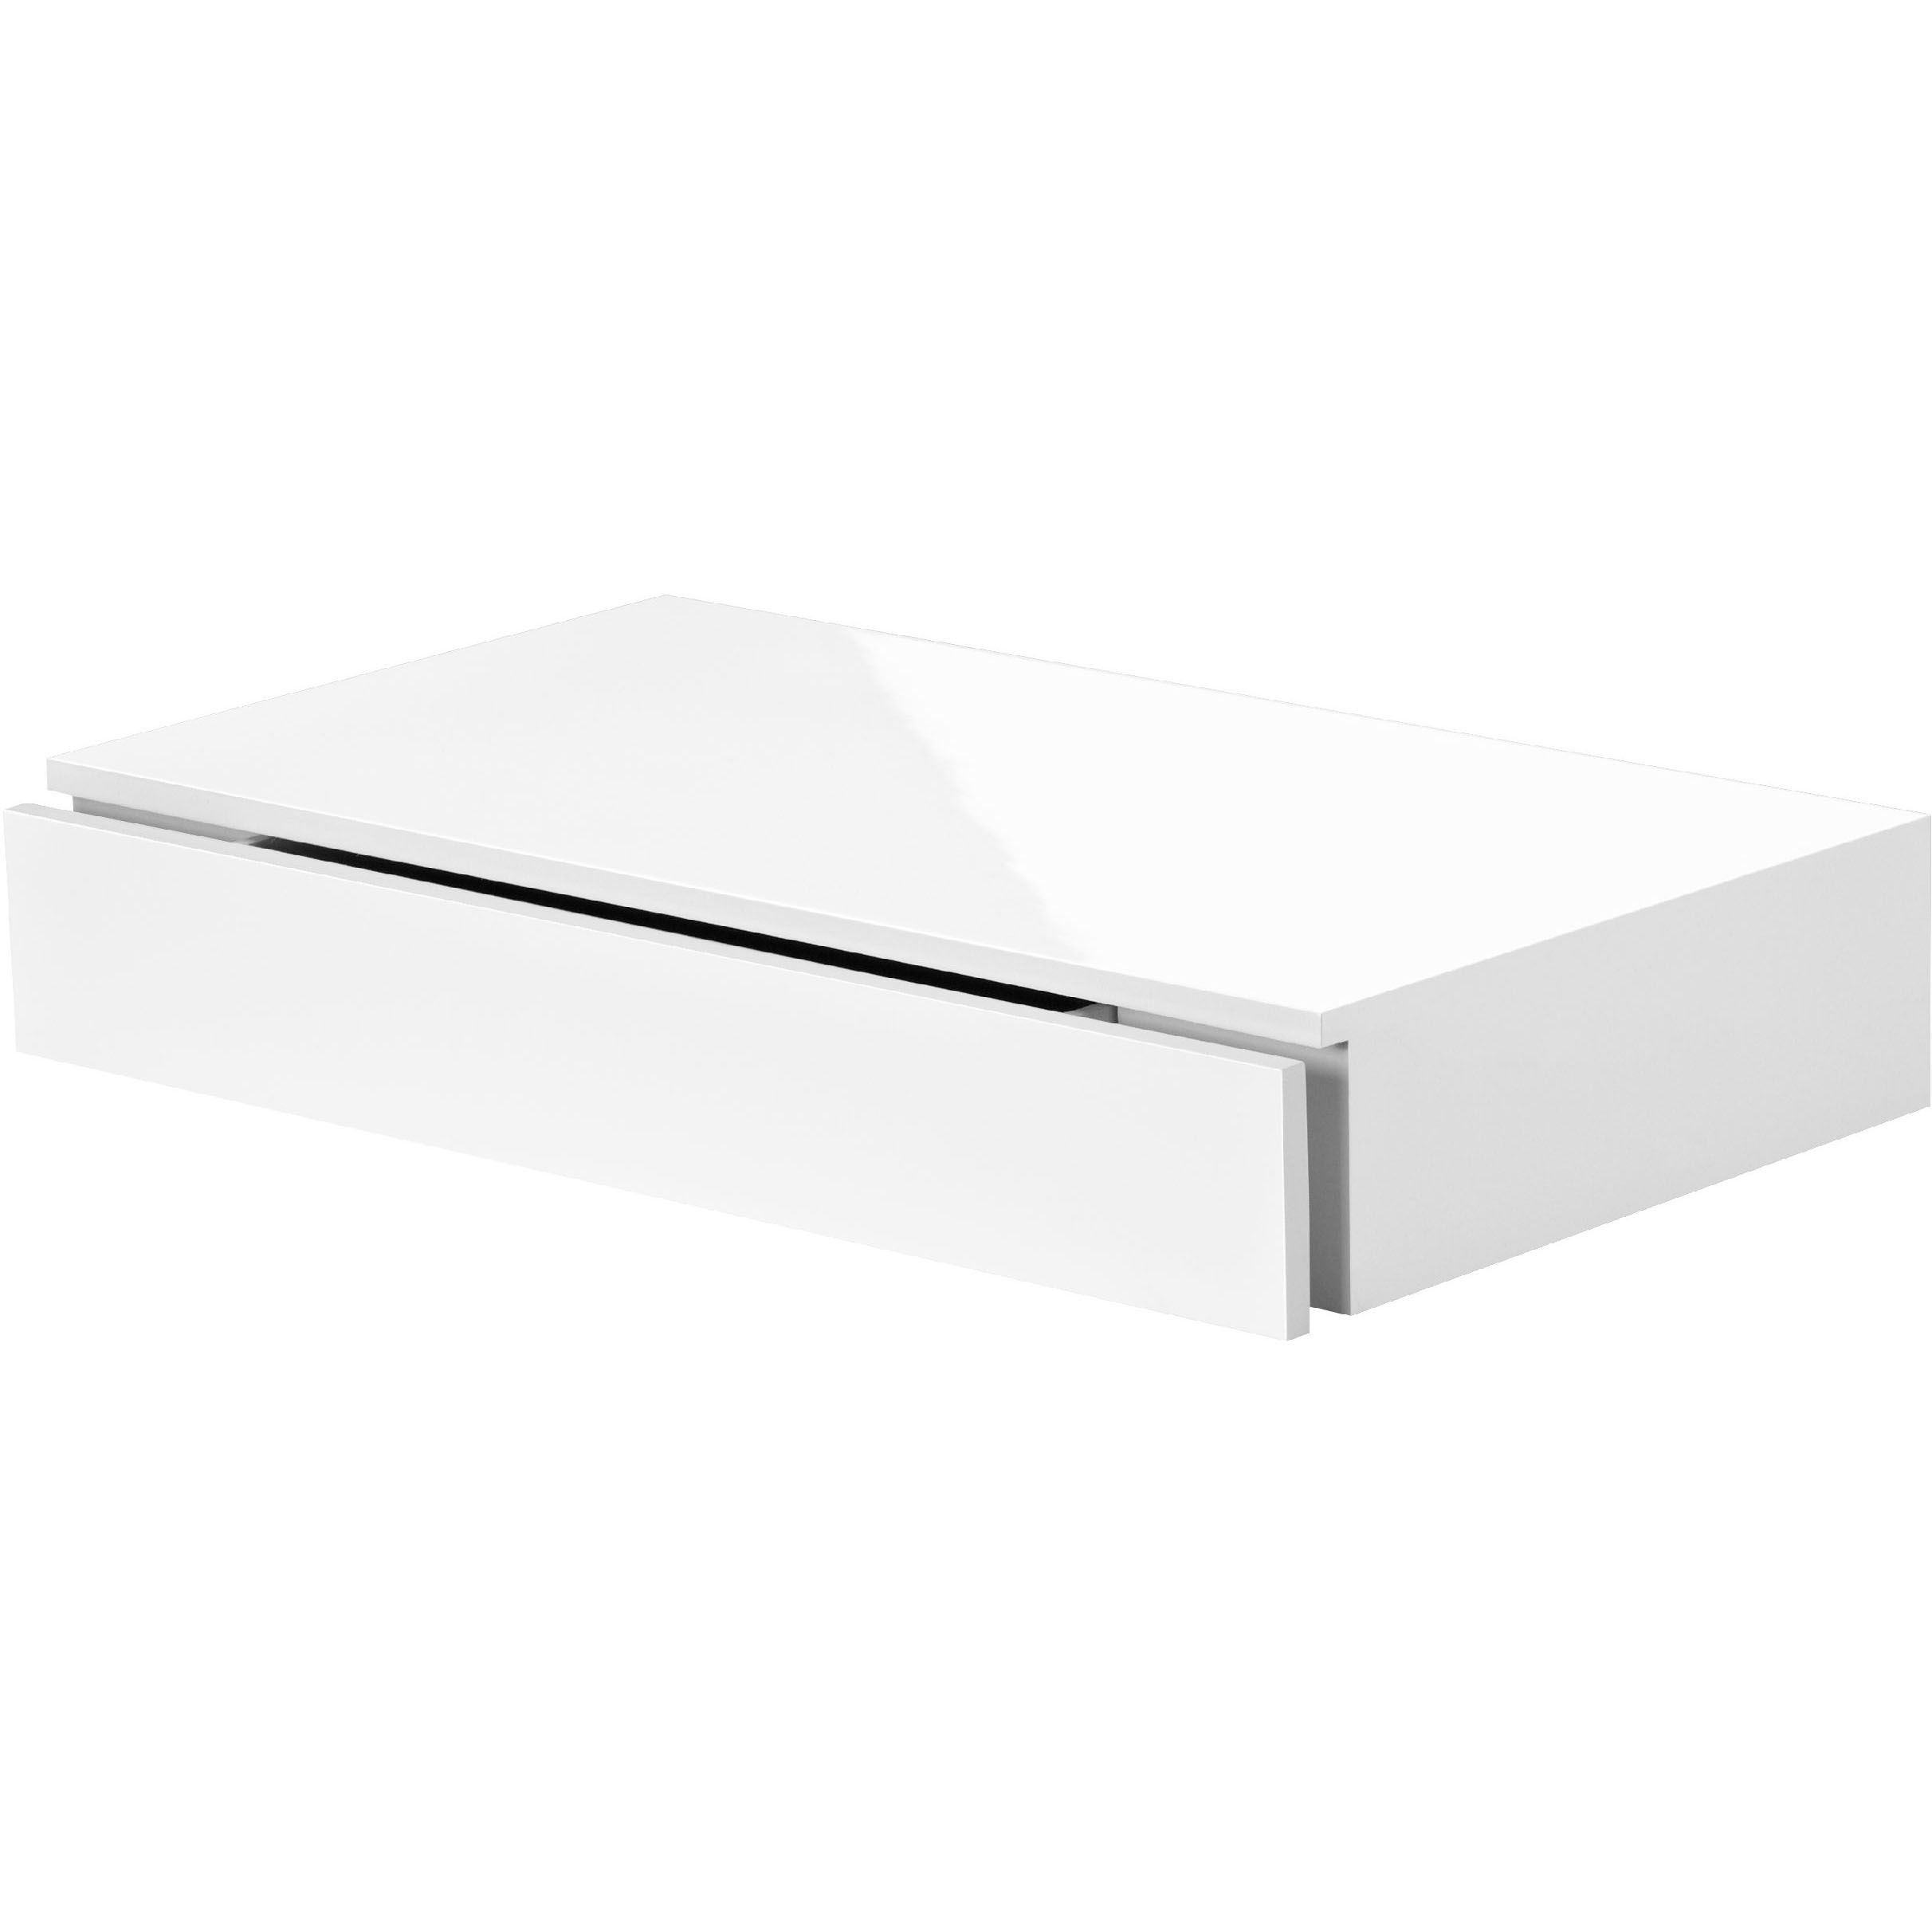 Floating Shelf With Drawer Cassetto 450x250x80mm Mastershelf Floating Shelf With Drawer Floating Shelves Drawer Shelves